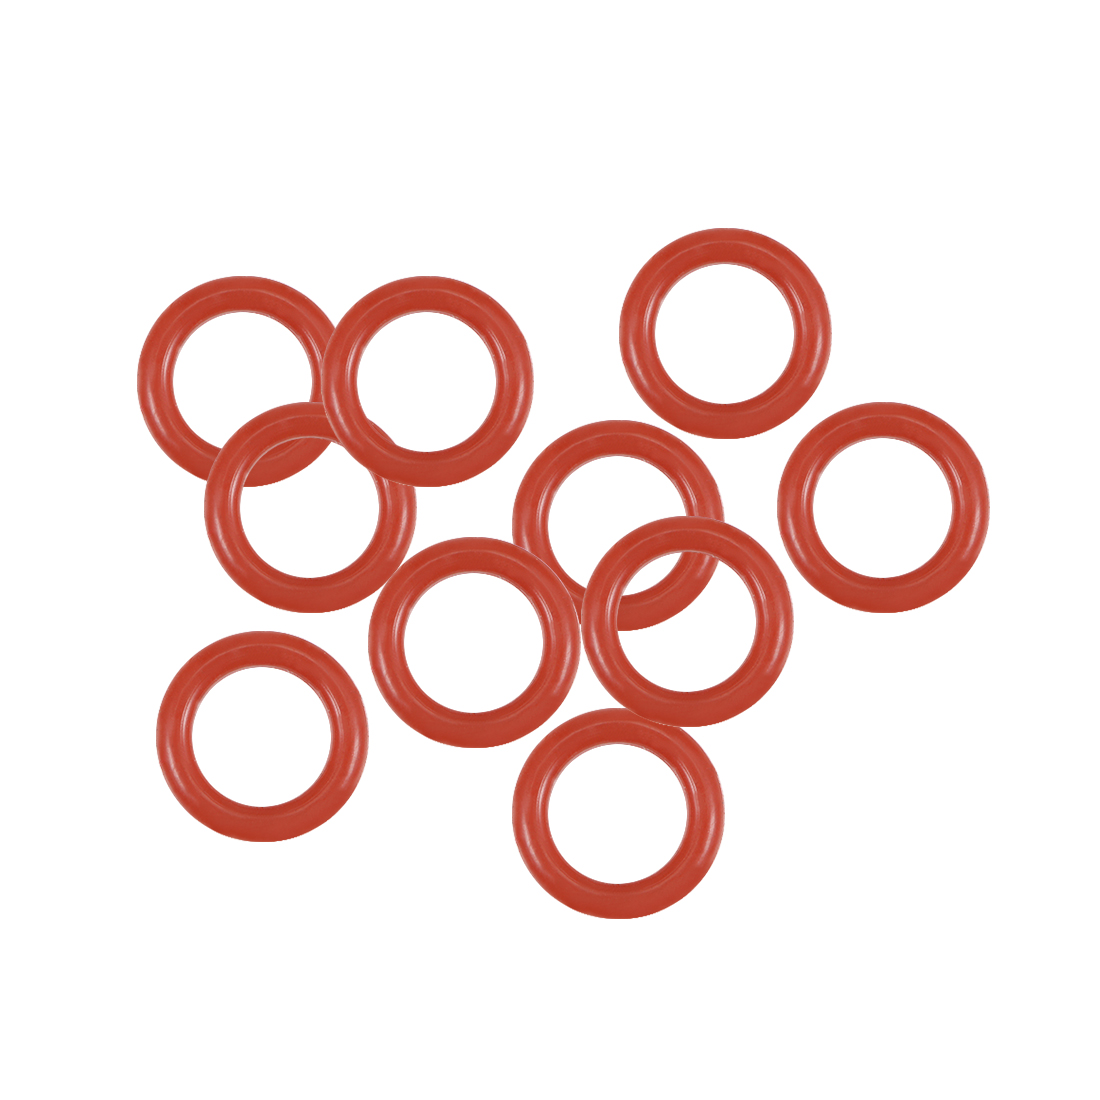 Silicone O-Rings 5.5mm OD 3.5mm Inner Diameter, 1mm Width, Seal Gasket Red 10Pcs